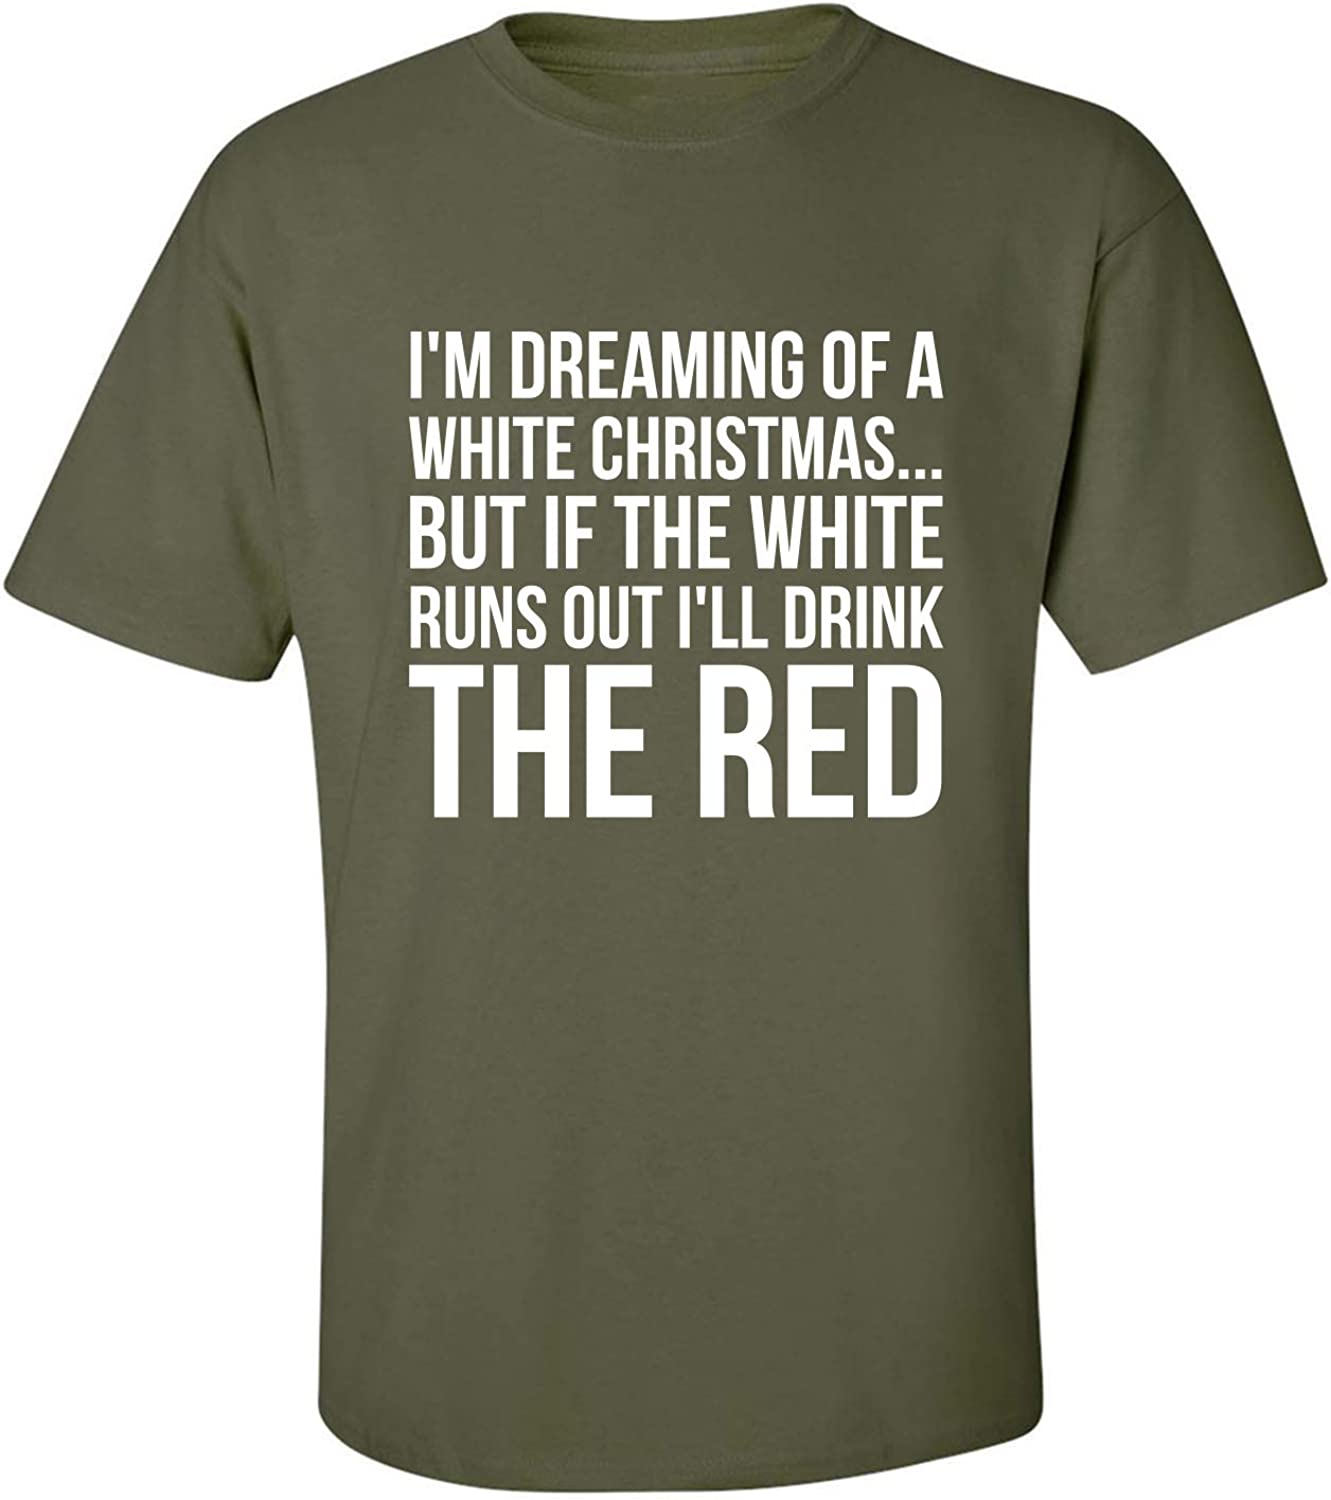 I'm Dreaming of A White Christmas Adult T-Shirt in Military Green - XXXXX-Large